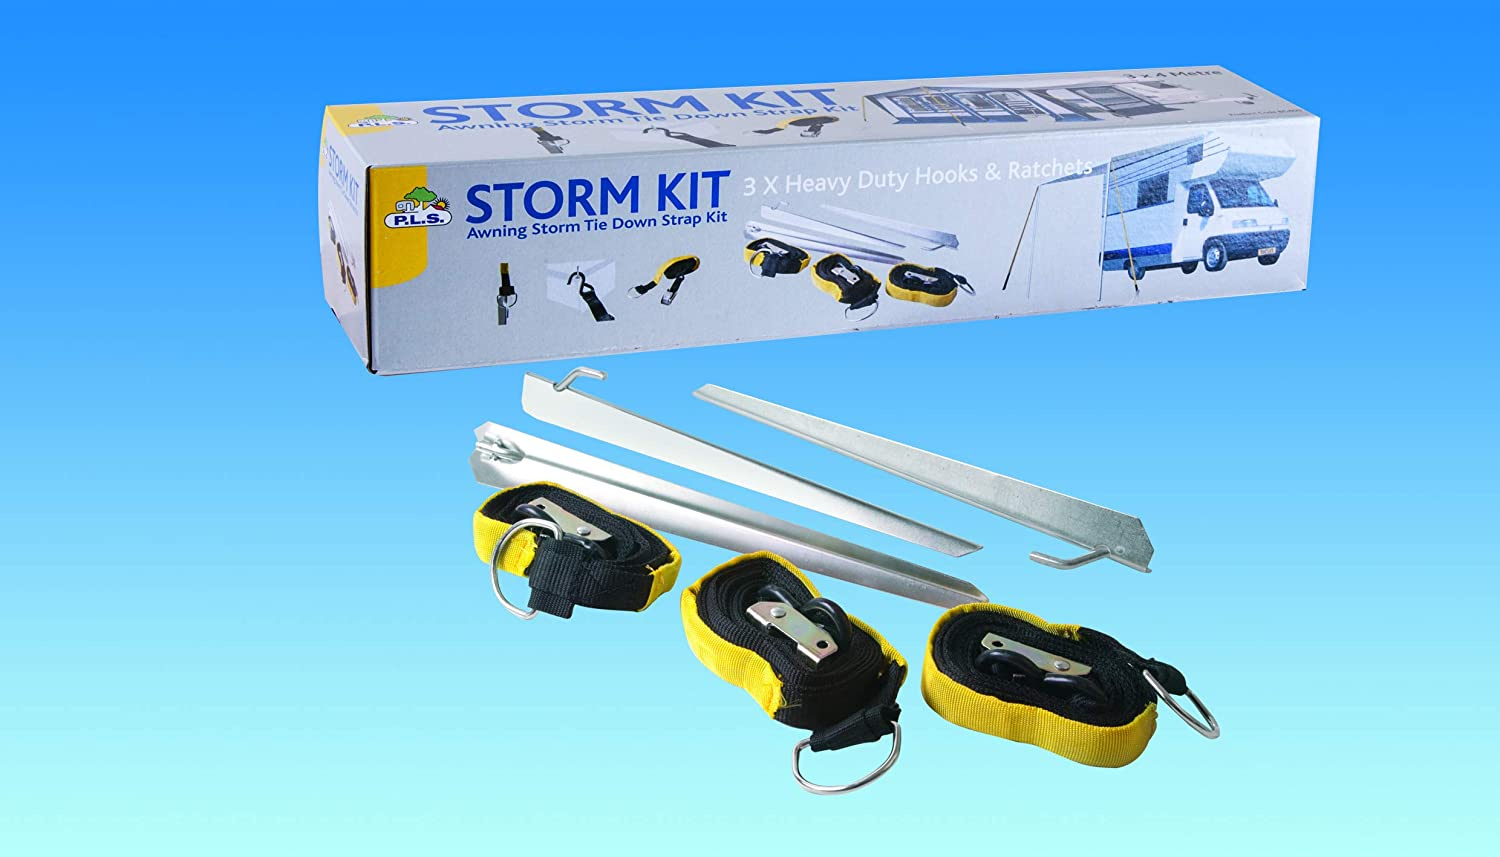 3 STRAPS BITS4REASONS PENNINE LEISURE NEW MODEL BG400 STORM KIT AWNING TIE DOWN STRAP KIT